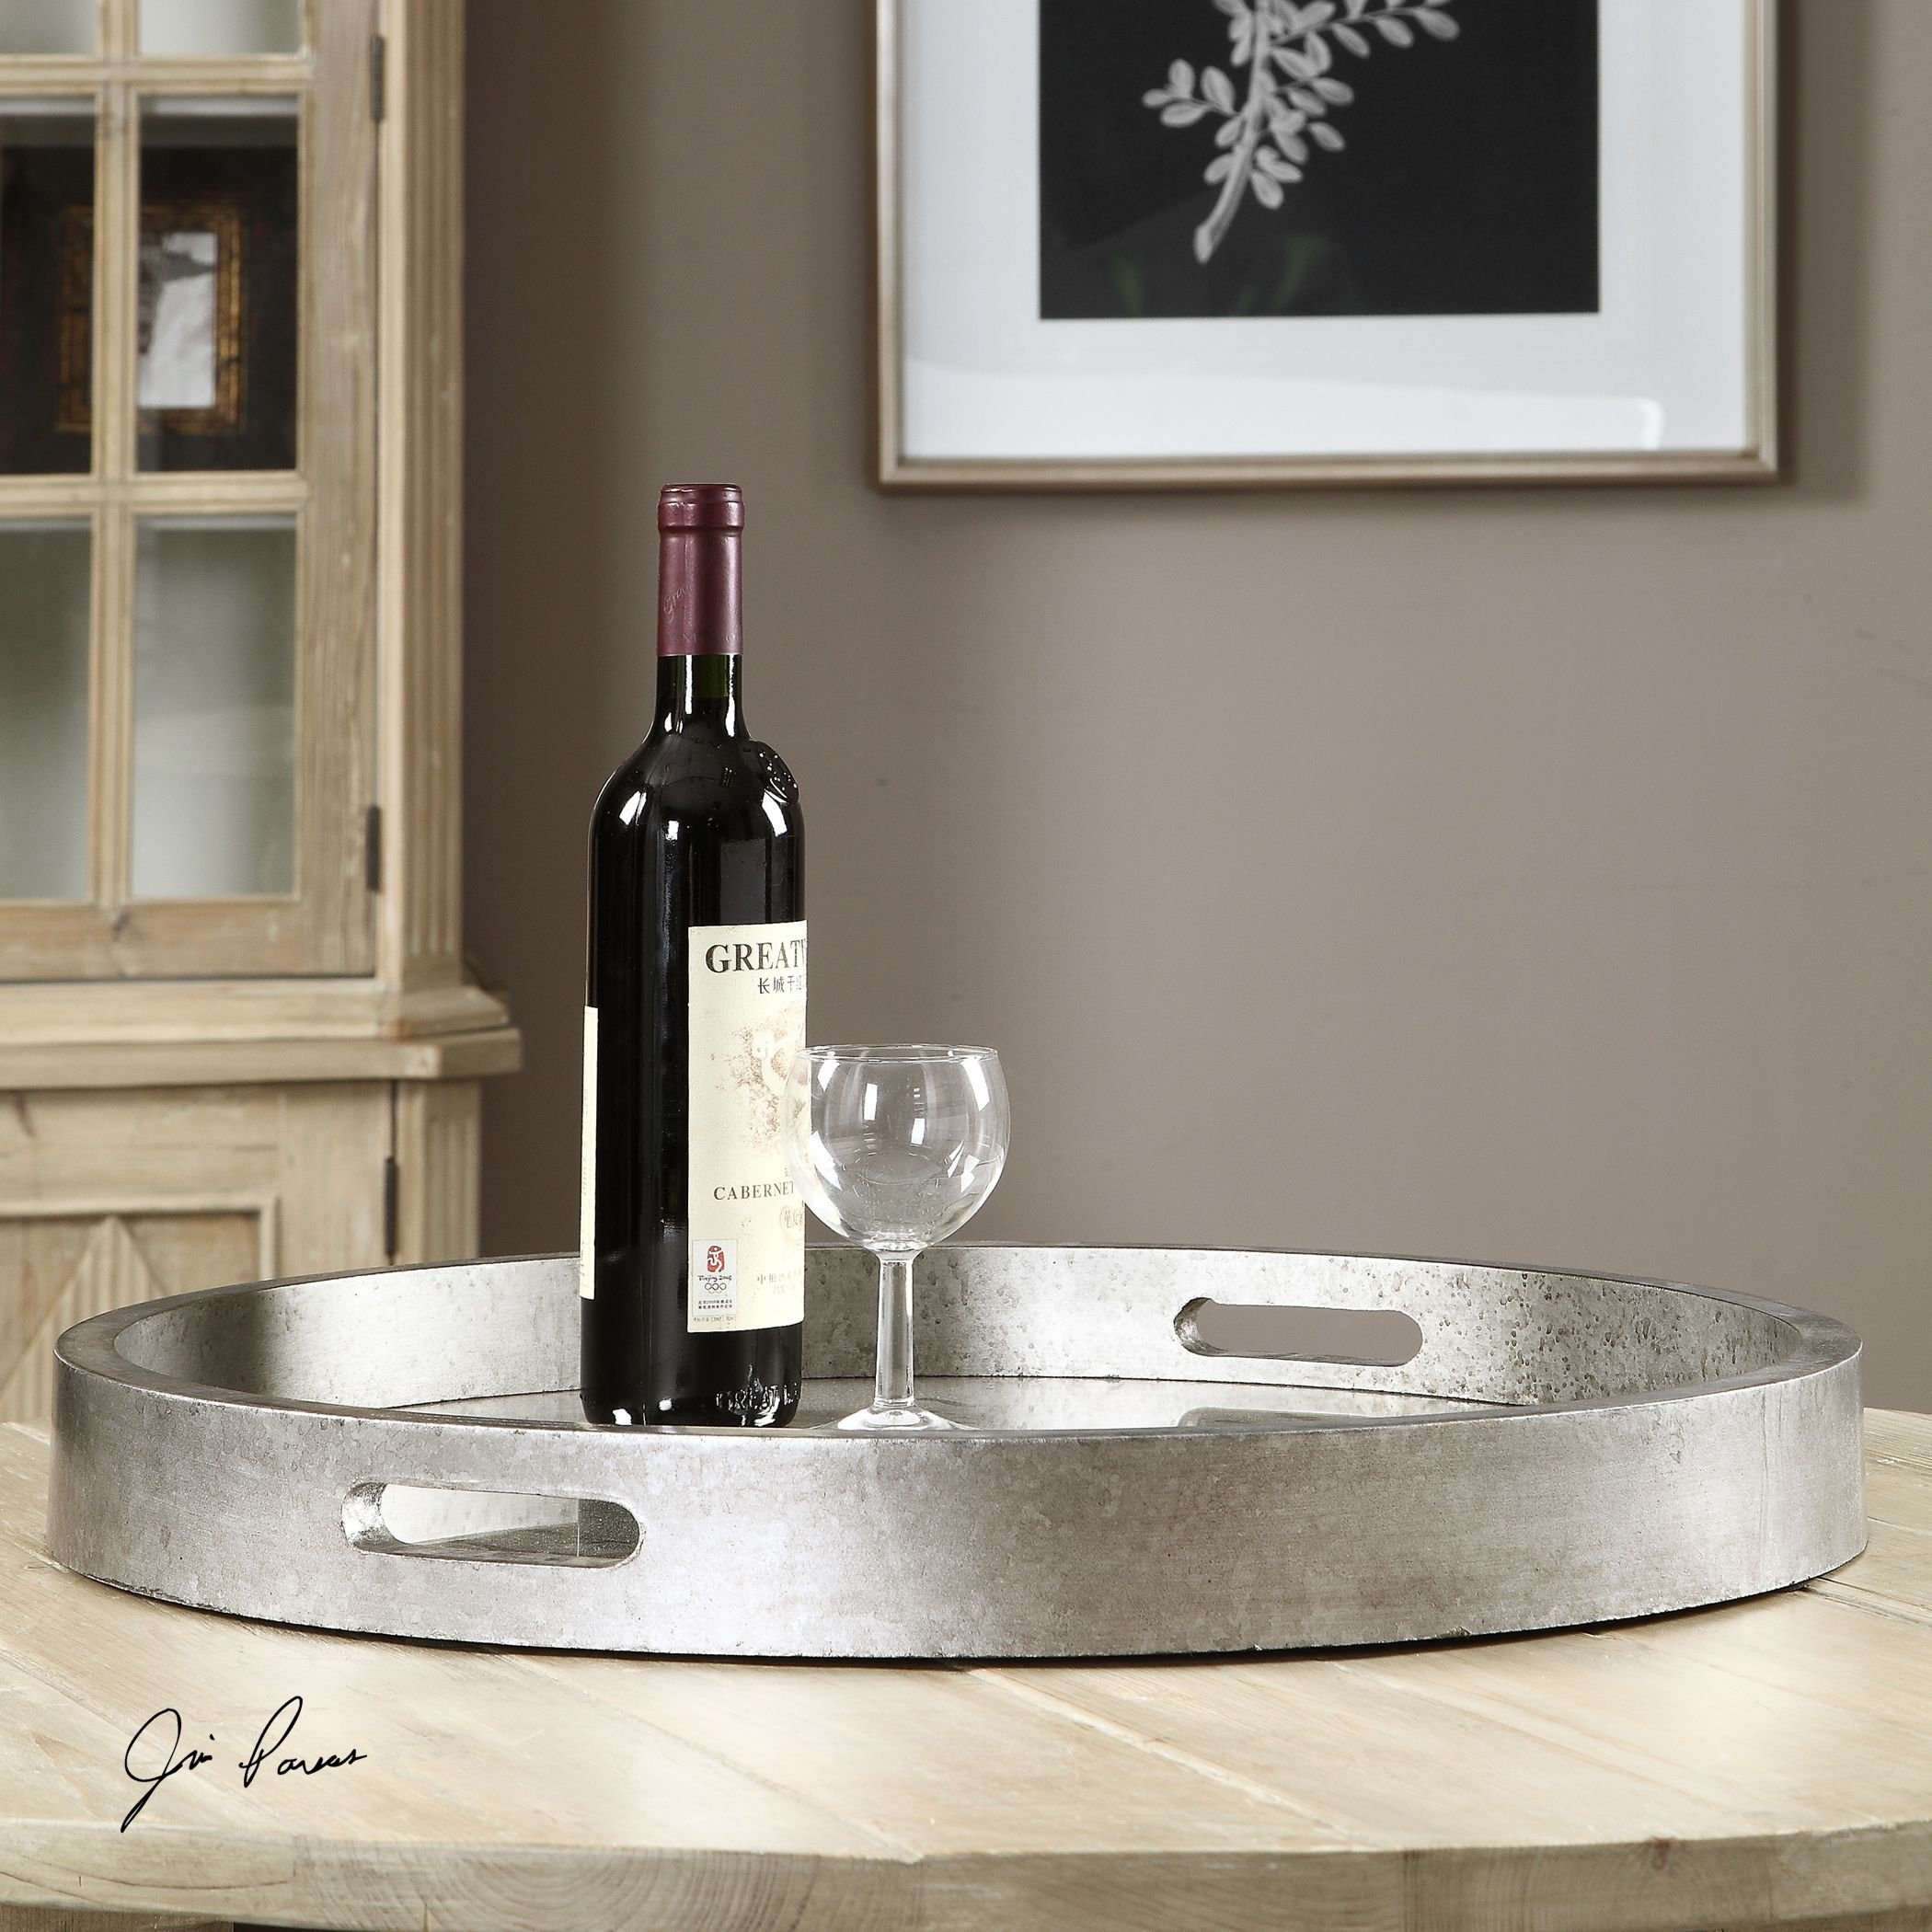 Round Silver Mirrored Decorative Serving Tray | Handles Bar Contemporary Classic by My Swanky Home